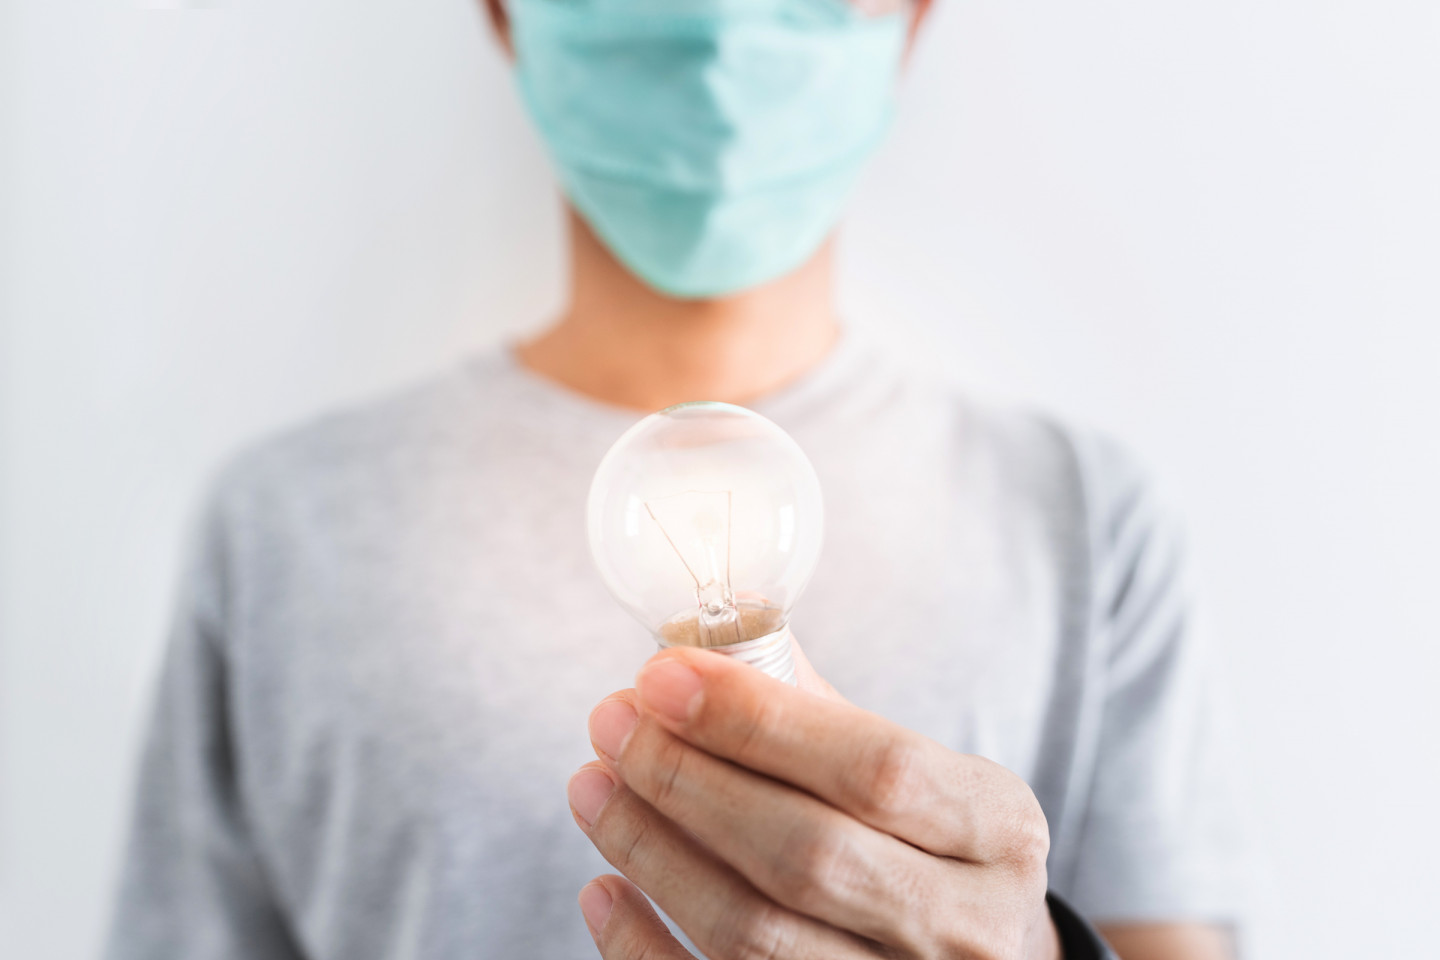 A person in a surgical mask holds a light bulb.